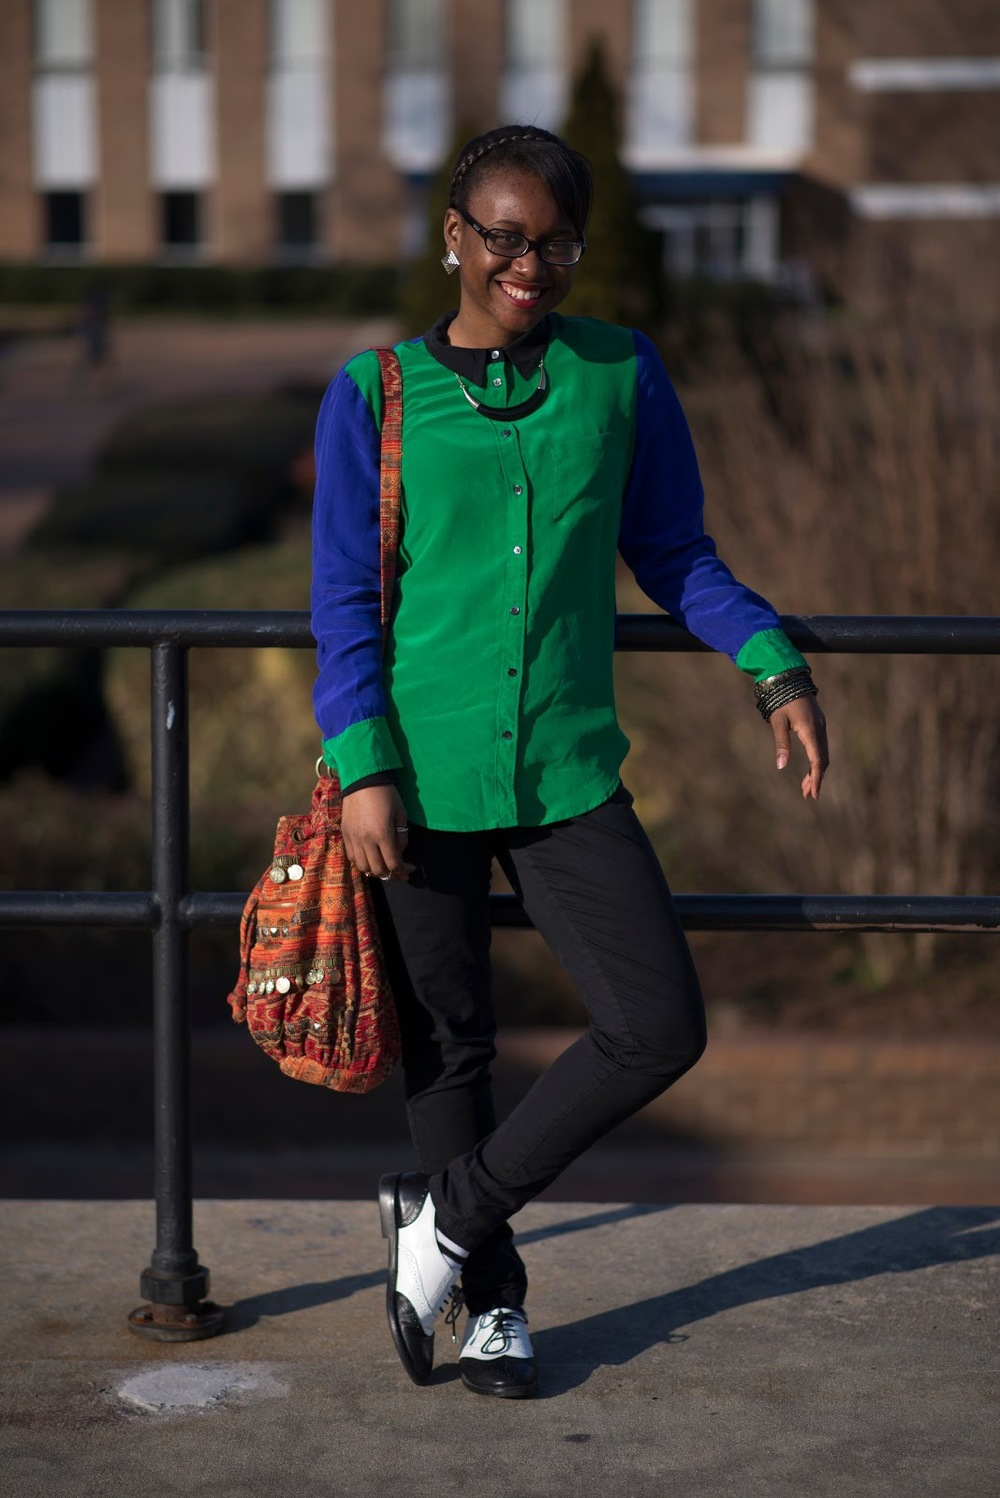 Kisha a St. Augustine's University Student is wearing a gorgeaous contrasting black collar green body and cuffs and blue sleeves shirt. She also wears black slim jeans and a pair of black and white brogue derby spectators and an aztec or native american print backpack